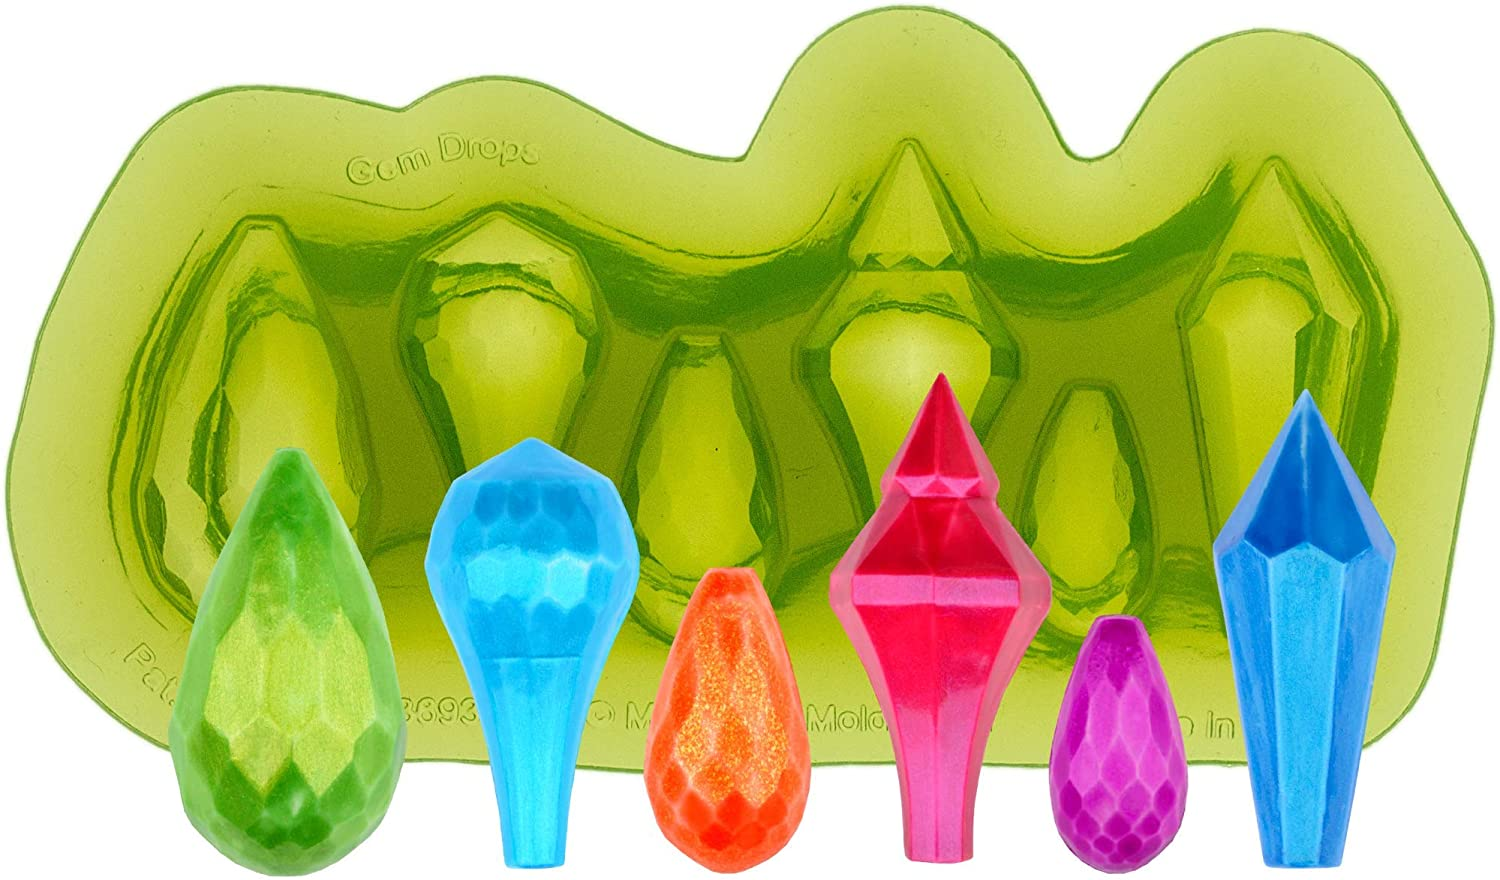 wholesale Marvelous Molds Gem Drops Silicone Decorating for Cake Indefinitely with Mold